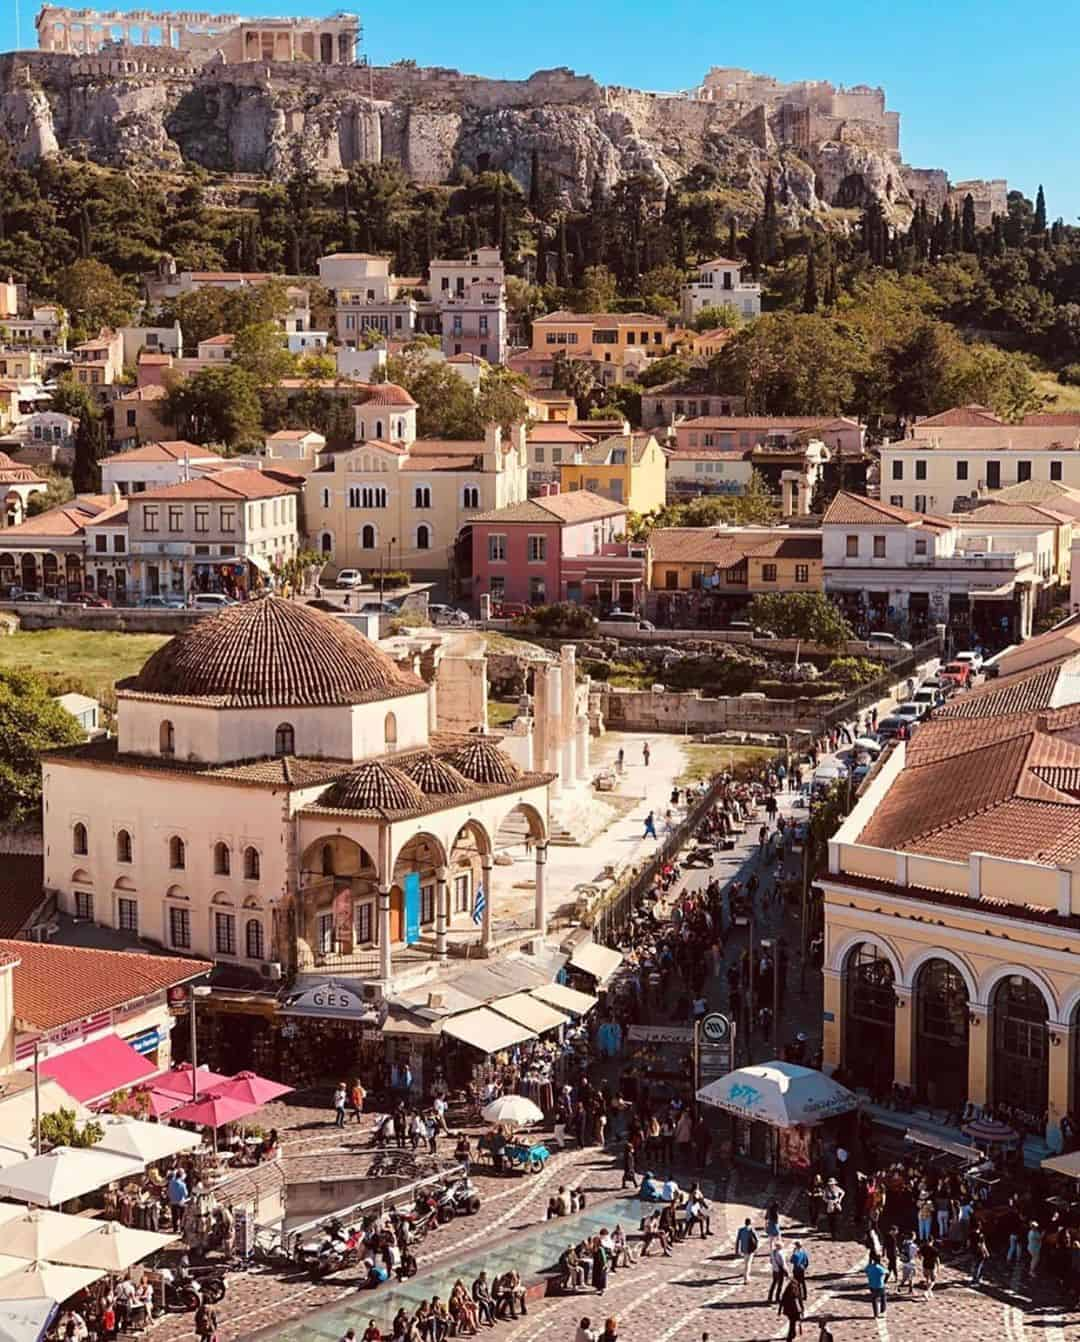 Visiting A for Athens in Monastiraki places you at the heart of the Greek capital